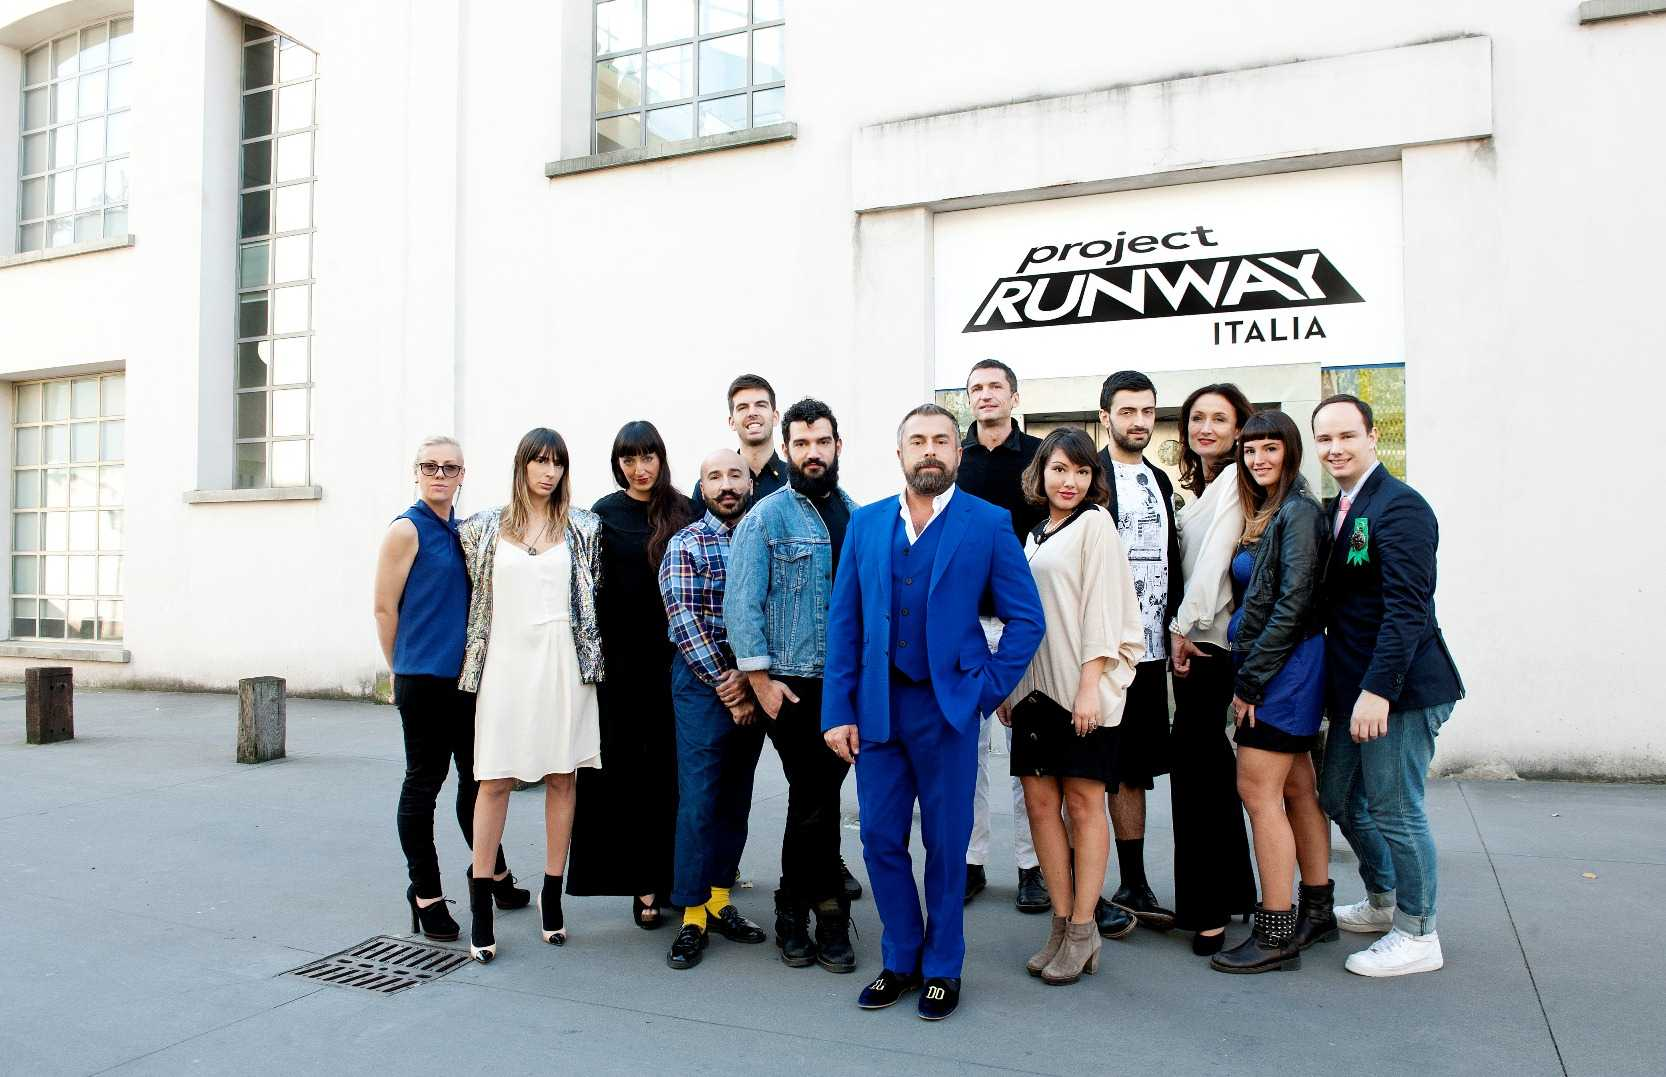 Project Runway Italia: dal 26 Febbraio su FoxLife | Digitale terrestre: Dtti.it